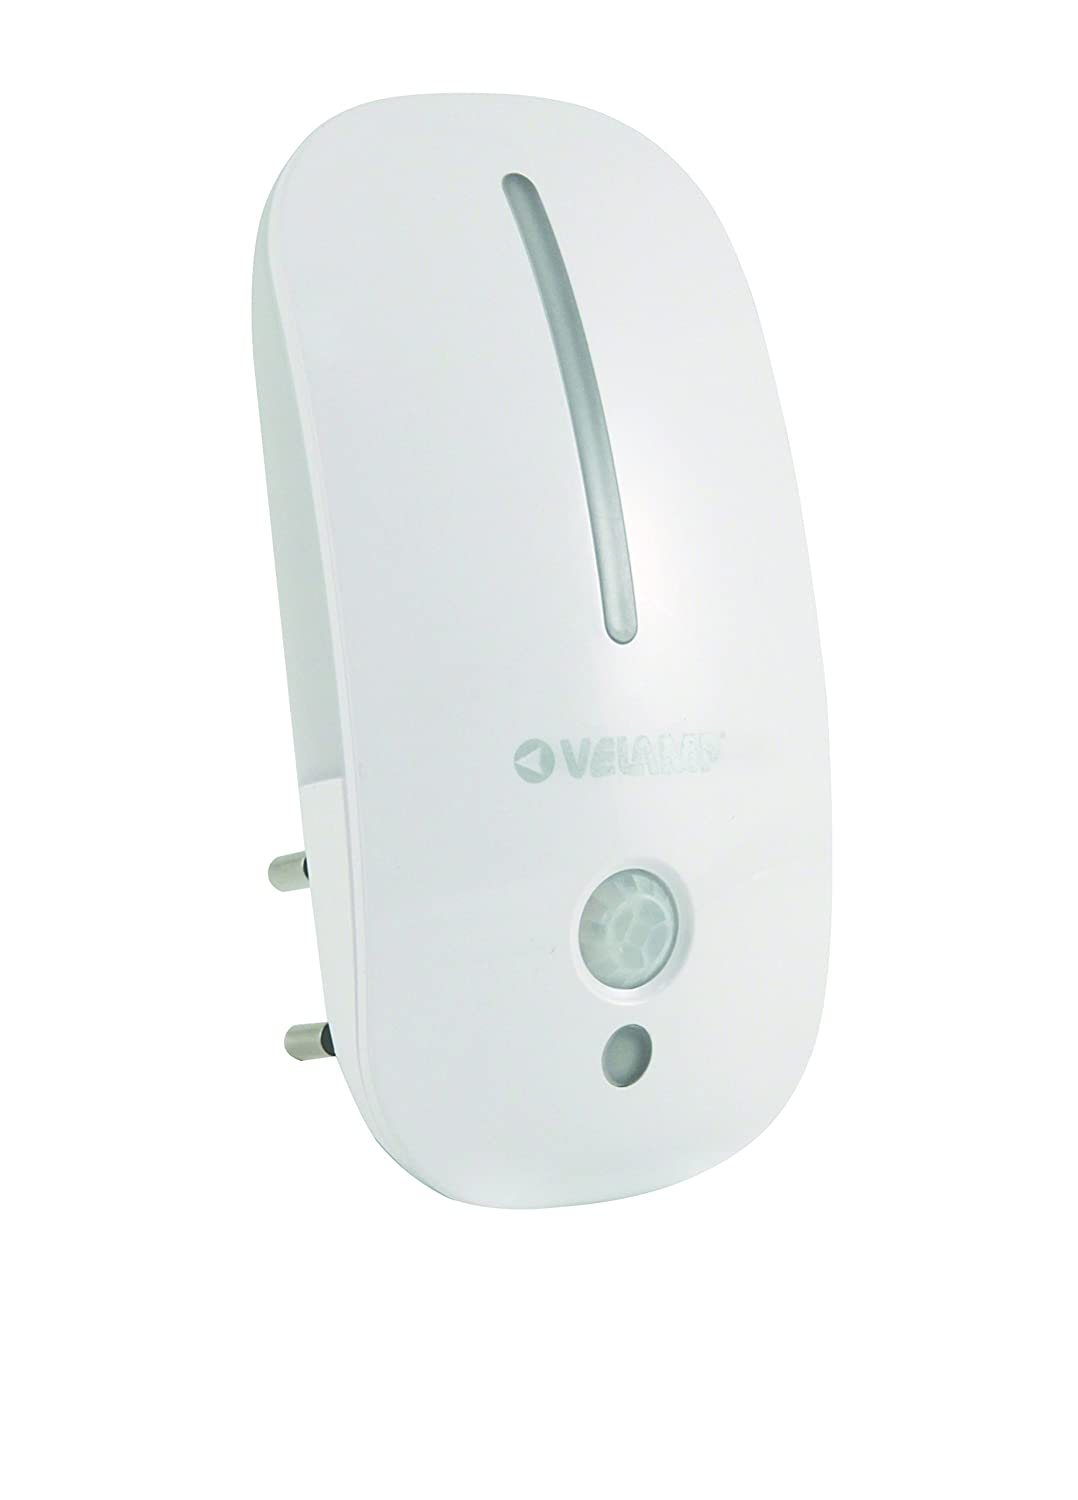 Velamp IL25LED Mouse Light Punto luz Con luz De Cortesía LED y DeteCtor De movimiento Con infrarrojos: Amazon.es: Iluminación